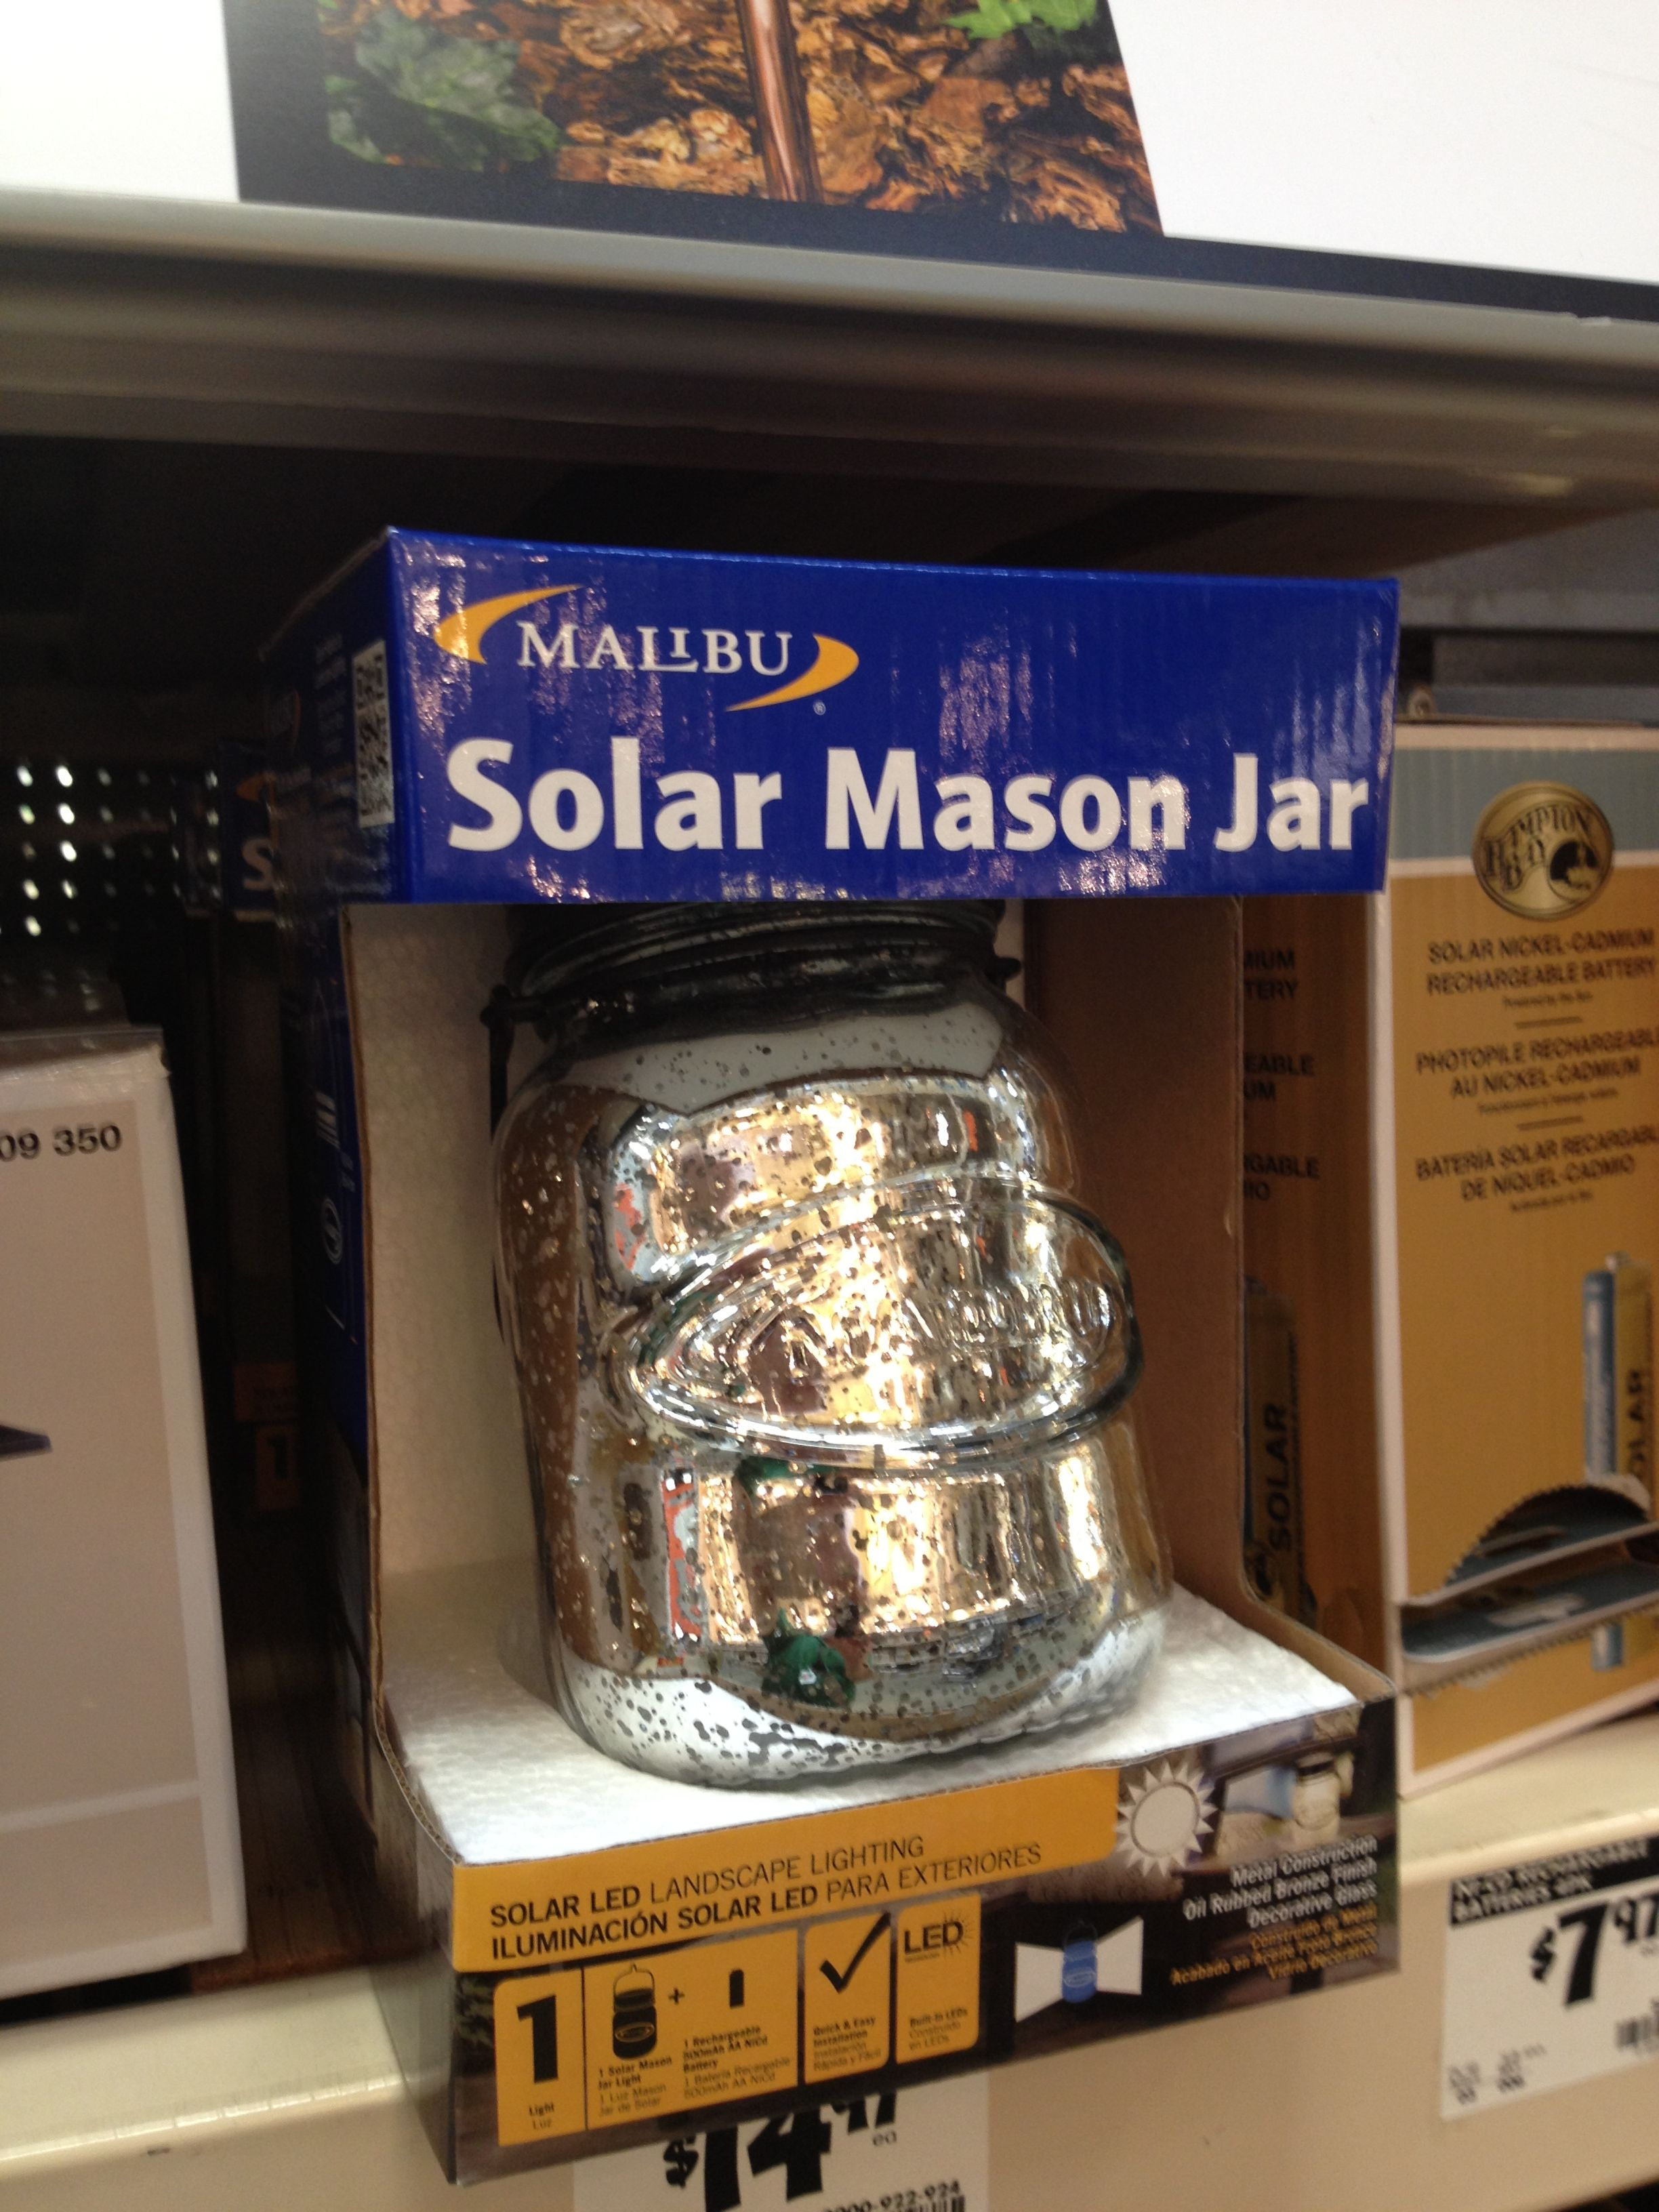 Keep The Picnic Theme Going When You Re Entertaining Outdoors With A Mason Jar Solar Light Solar Mason Jars Mason Jar Solar Lights Ball Mason Jars